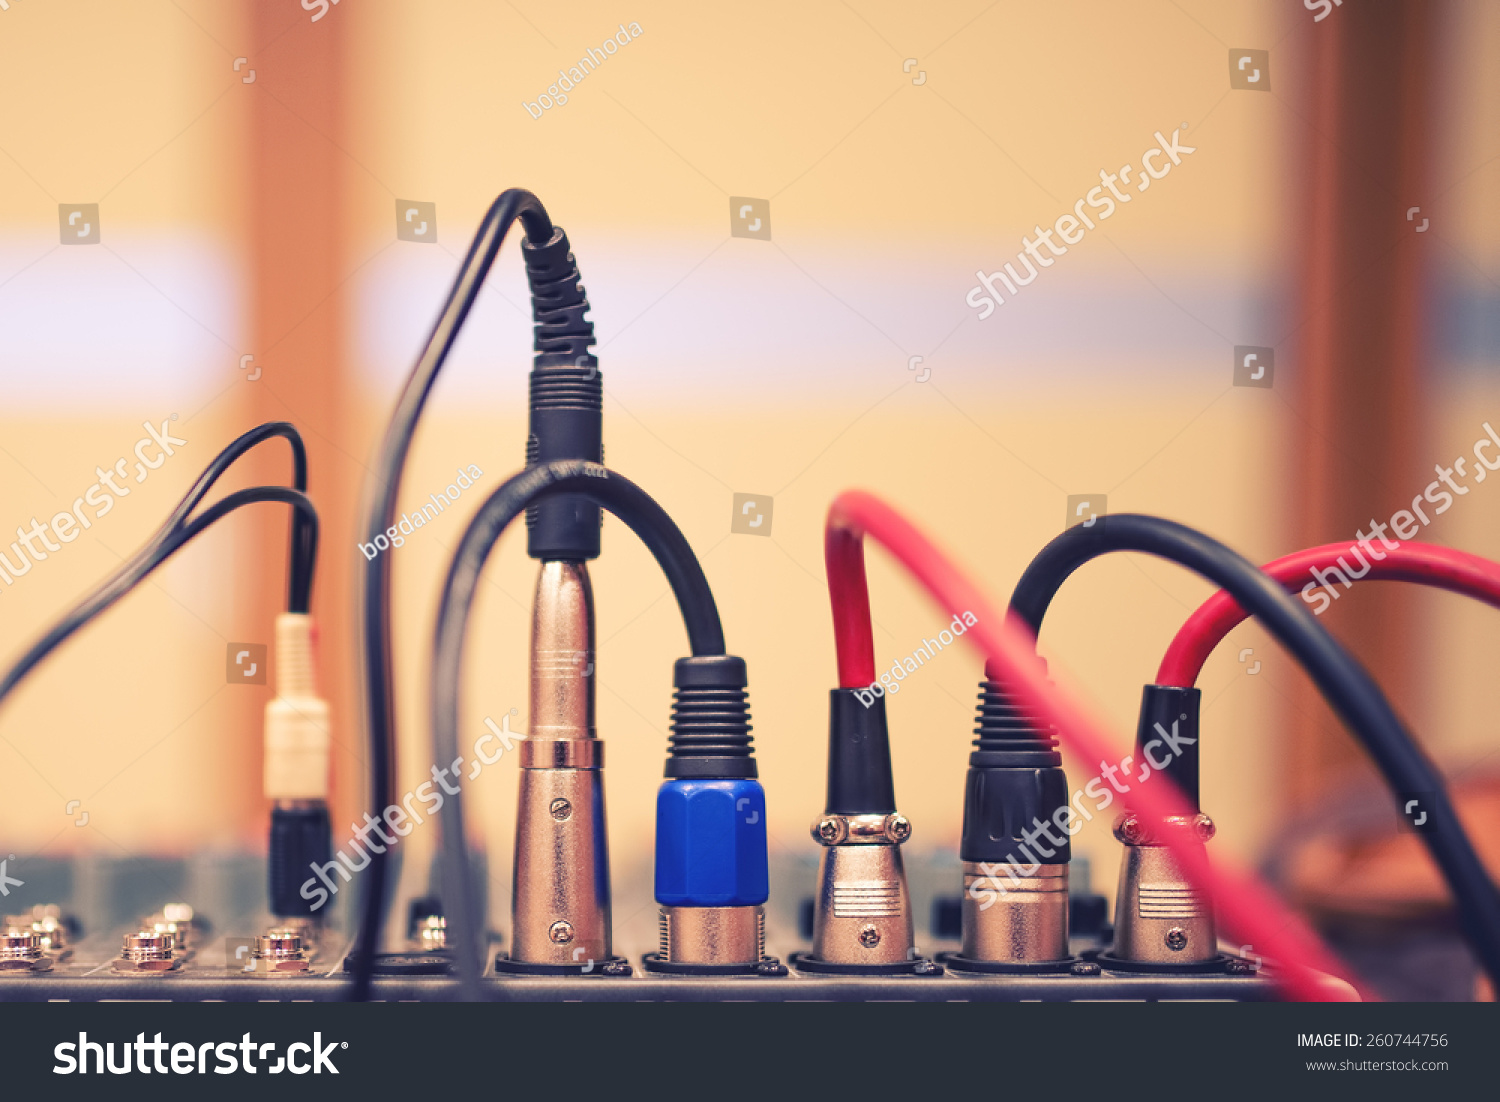 audio jack wires connected audio mixer stock photo 260744756 audio jack and wires connected to audio mixer music dj equipment at concert festival